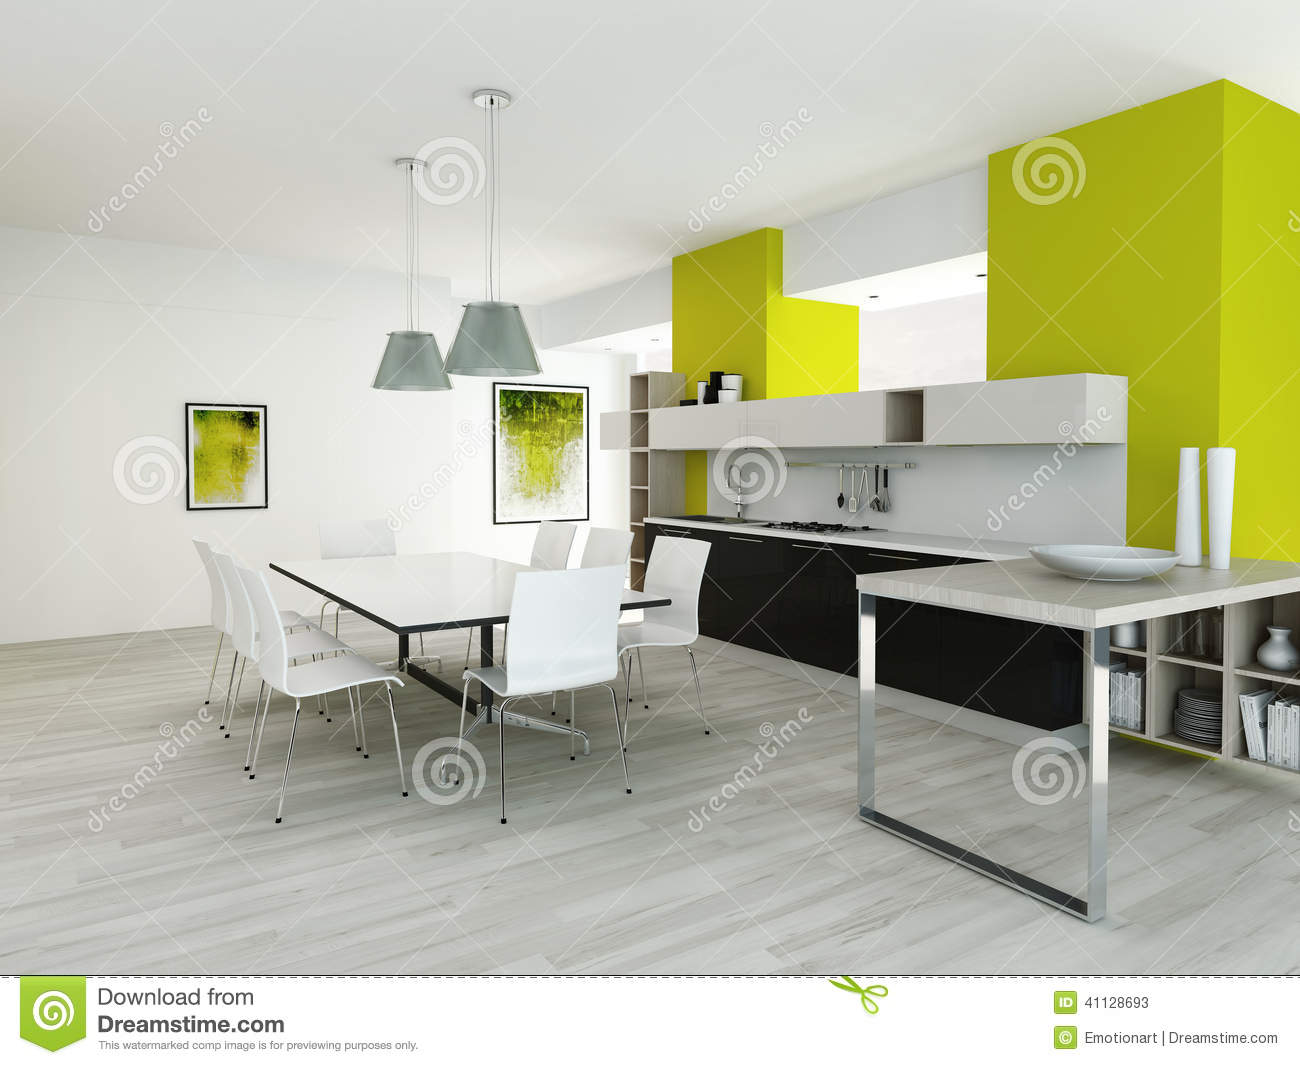 cuisine color e par vert moderne int rieure illustration stock image 41128693. Black Bedroom Furniture Sets. Home Design Ideas